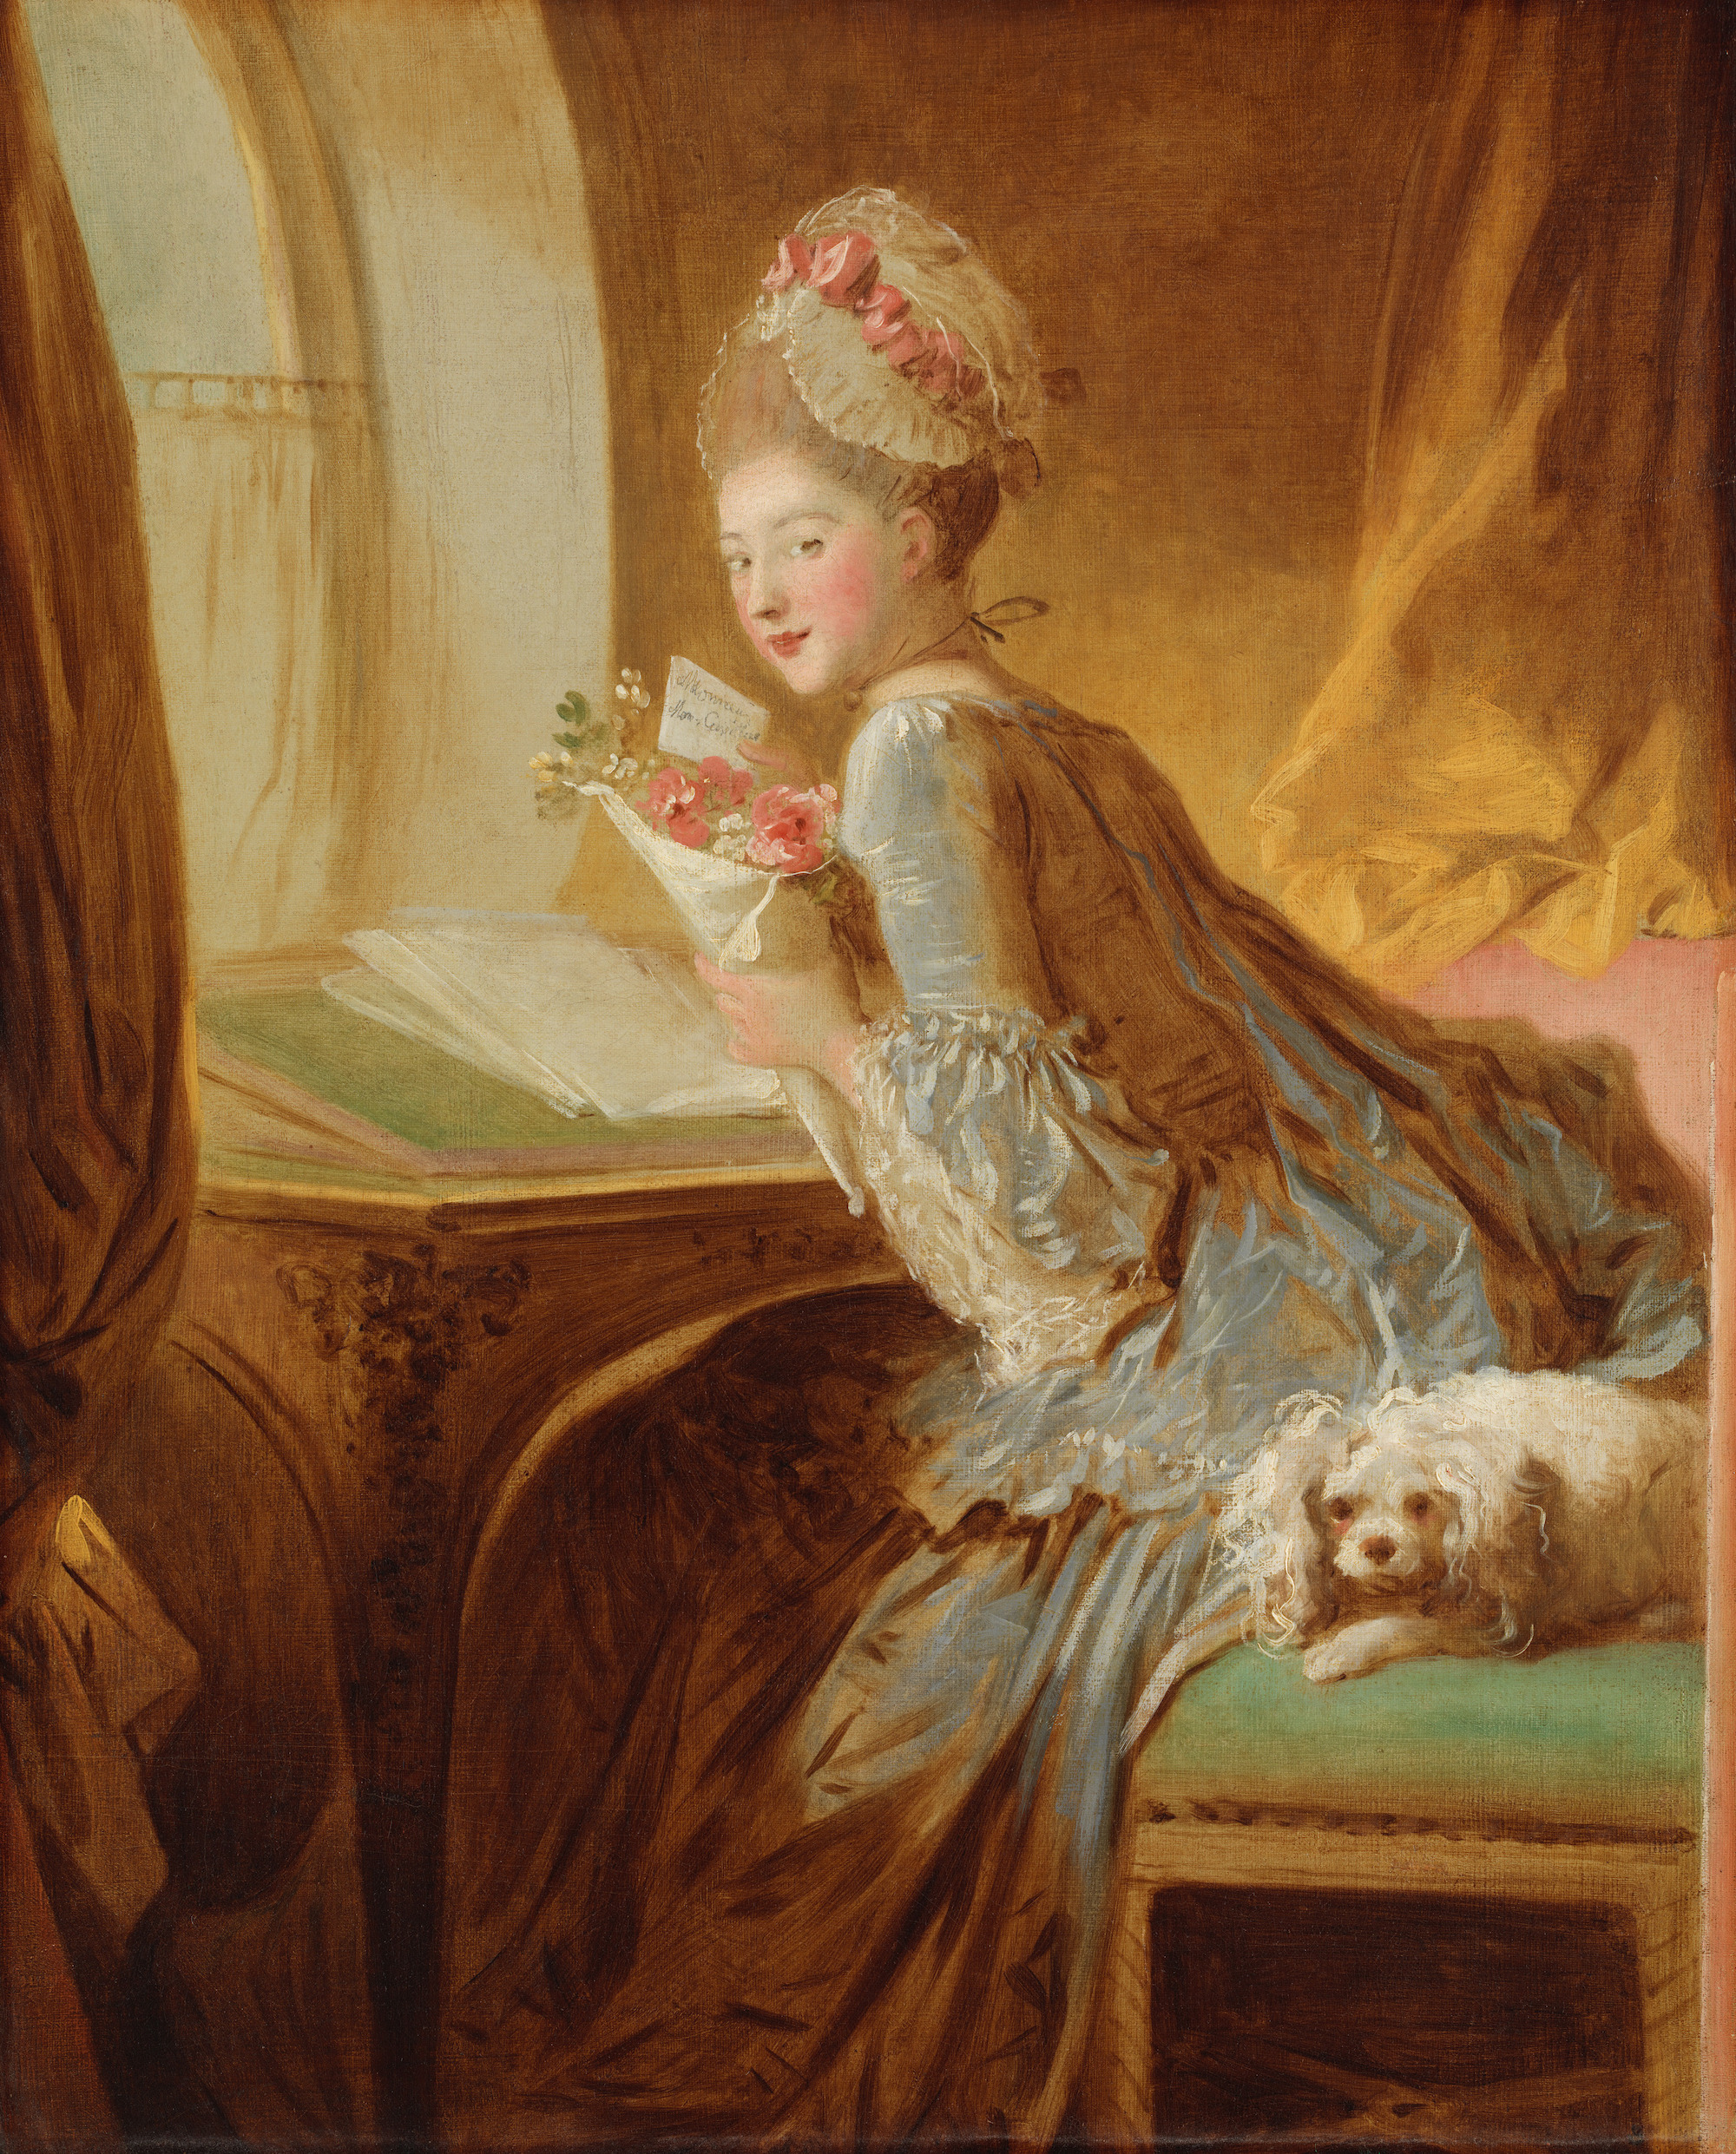 A woman wearing a blue dress and a tall white wig leans over a writing desk holding a letter and flowers. She looks back over her shoulder at the viewer. A small dog sits behind her on her chair. The light from the window above her desk gives the whole painting a warm yellow glow.